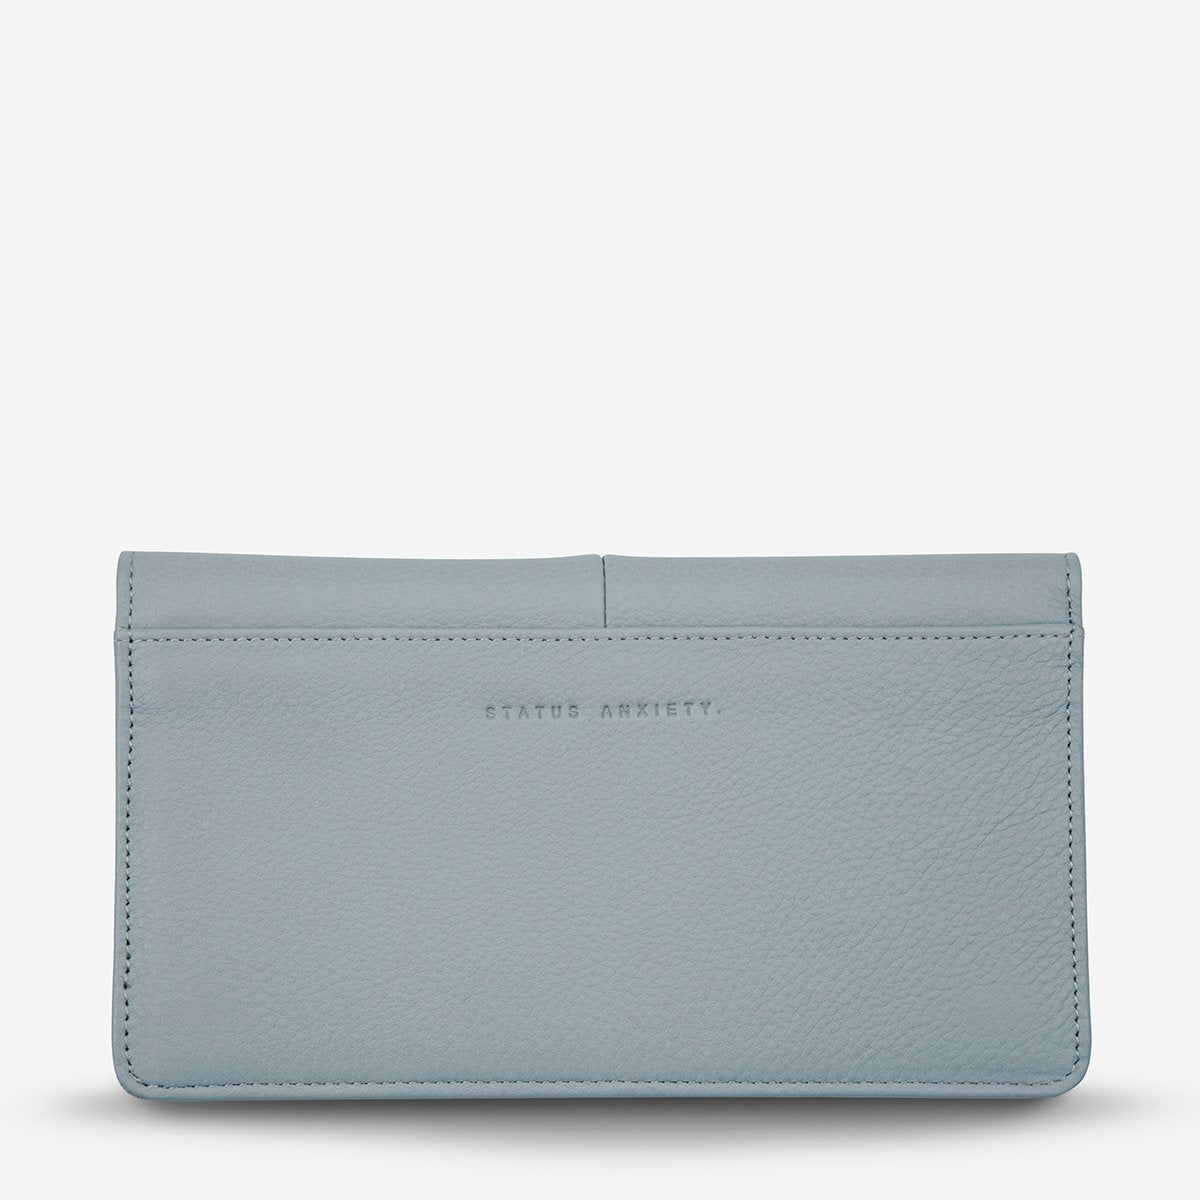 Status Anxiety Triple Threat Women's Leather Wallet - Arctic Grey